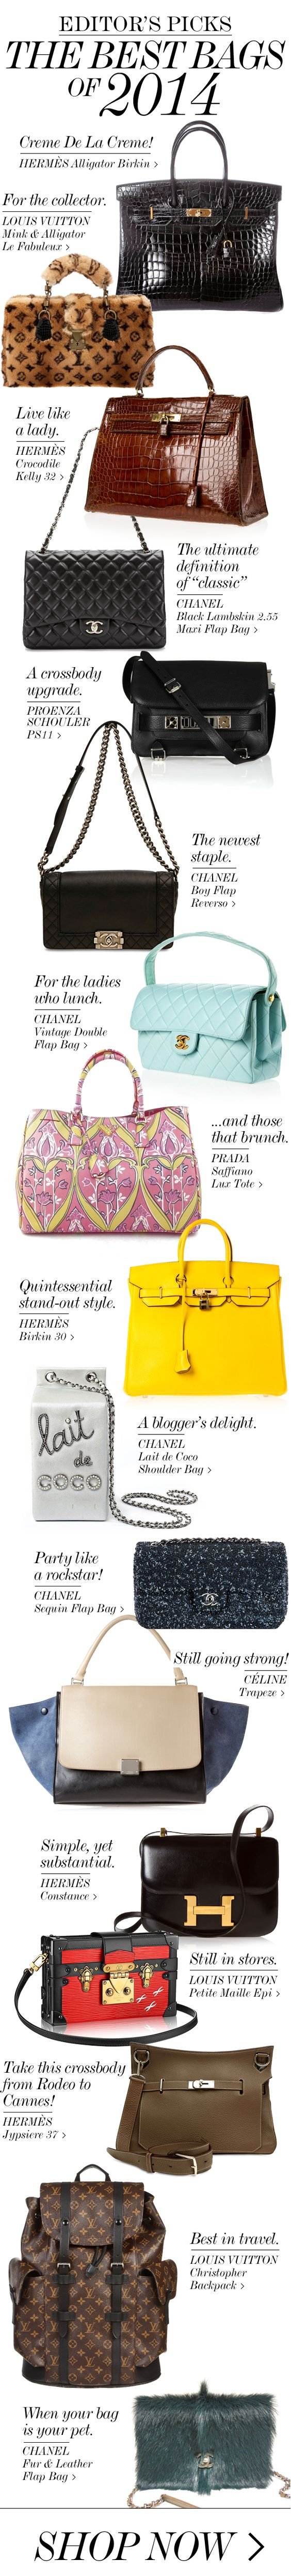 THE BEST BAGS OF 2014